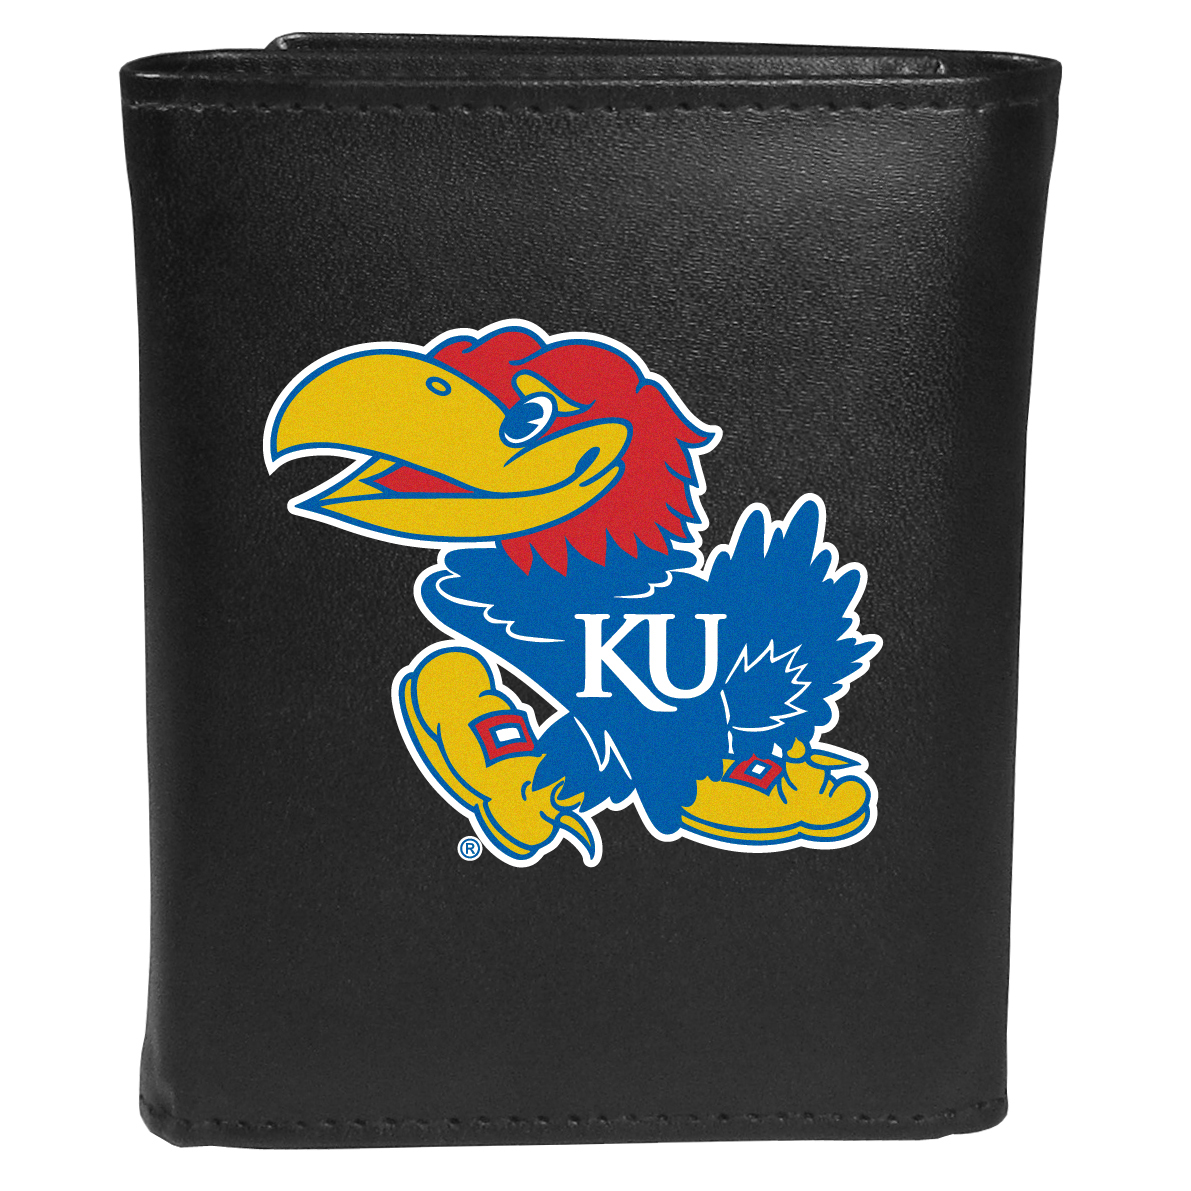 Kansas Jayhawks Tri-fold Wallet Large Logo - Sports fans do not have to sacrifice style with this classic tri-fold wallet that sports theKansas Jayhawks?extra large logo. This men's fashion accessory has a leather grain look and expert craftmanship for a quality wallet at a great price. The wallet features inner credit card slots, windowed ID slot and a large billfold pocket. The front of the wallet features an extra large printed team logo.